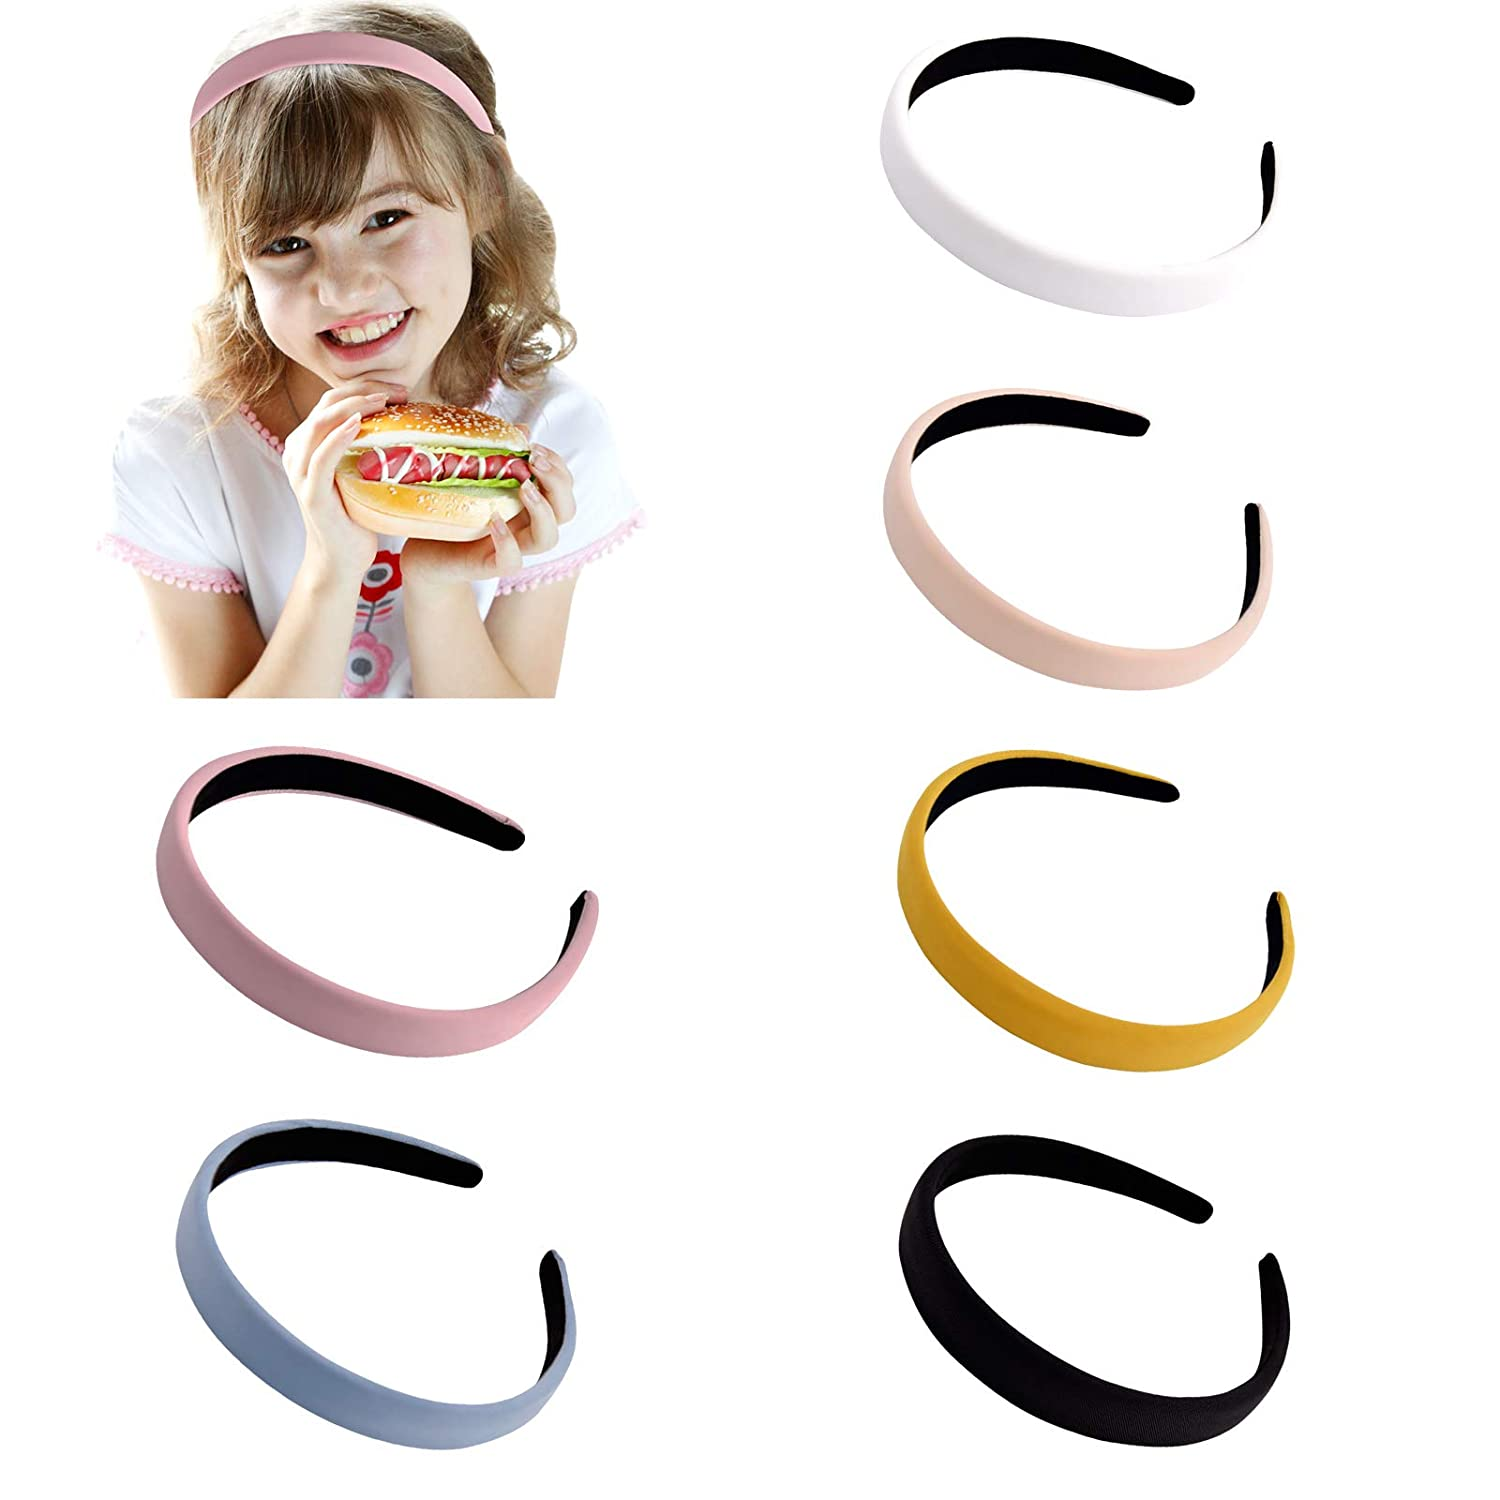 DEEKA 6 Pieces Fabric Headband Vintage Bands Color Solid Regular discount fo Hair We OFFer at cheap prices